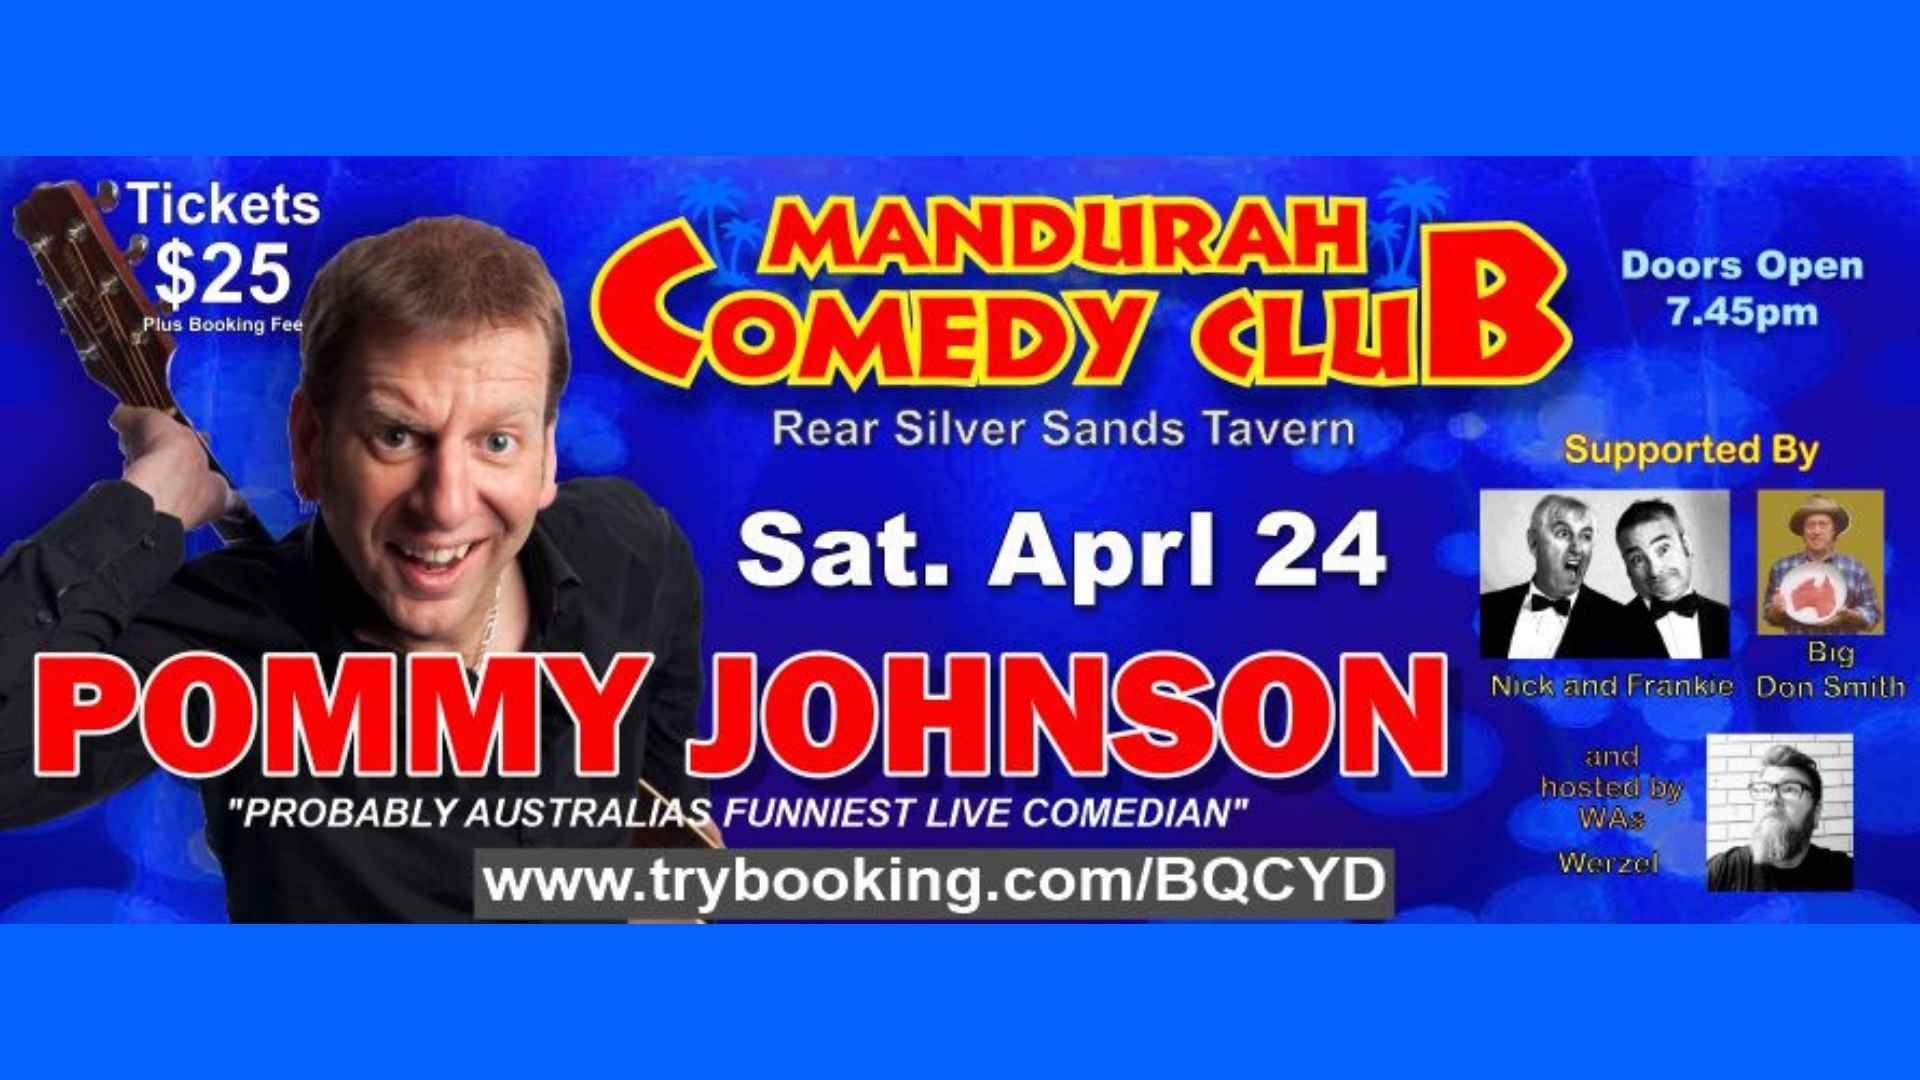 Mandurah-comedy-club